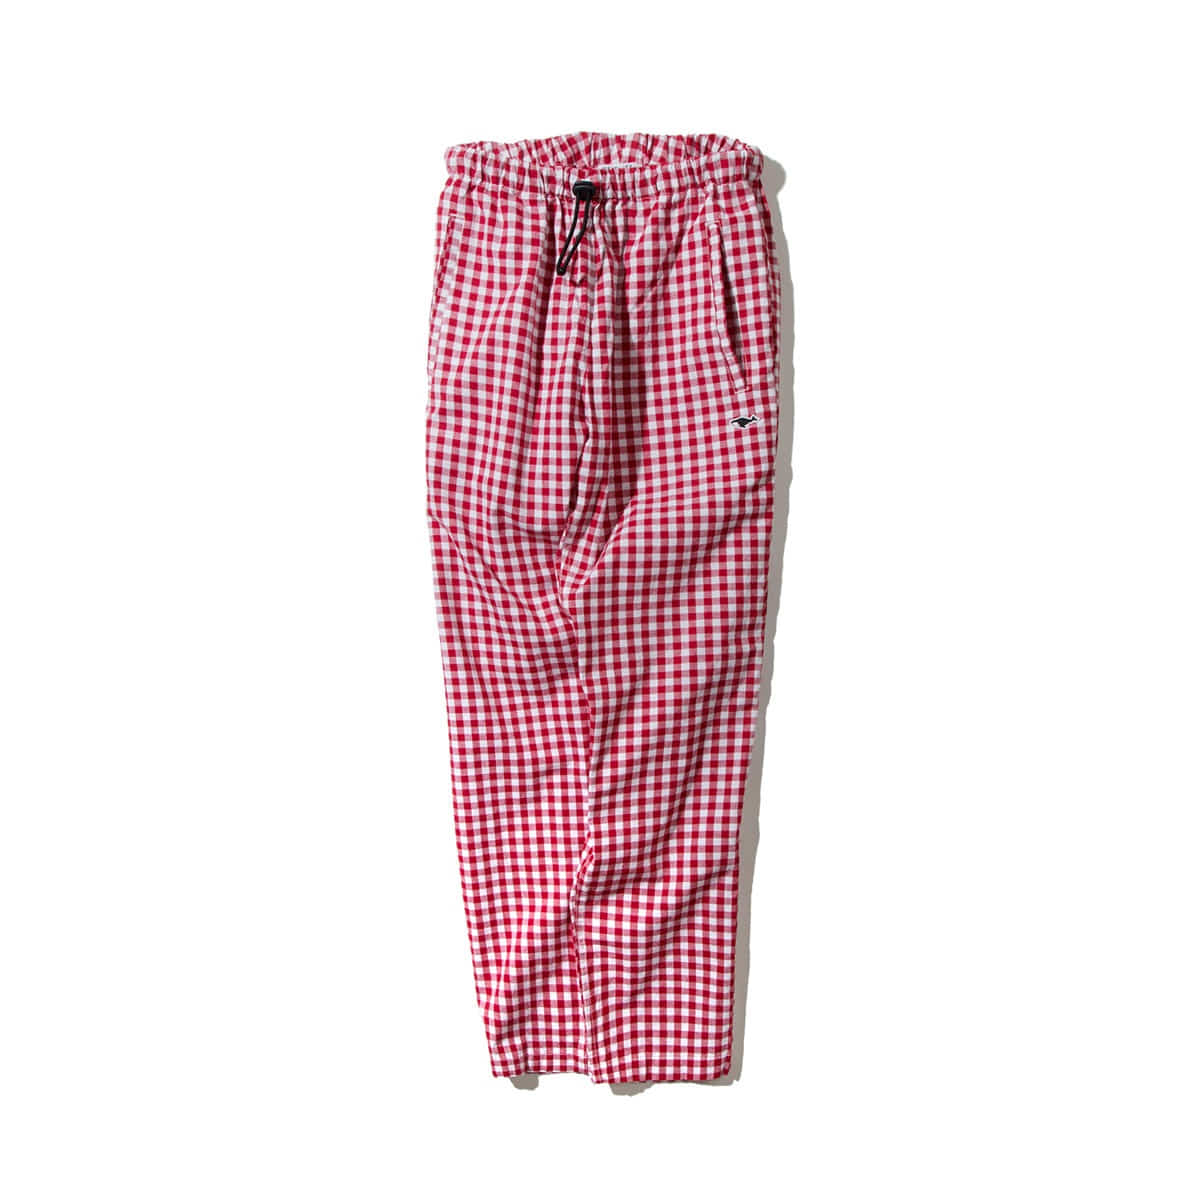 [NEITHERS] 312-14 MEDICAL PANTS 'RED/WH'